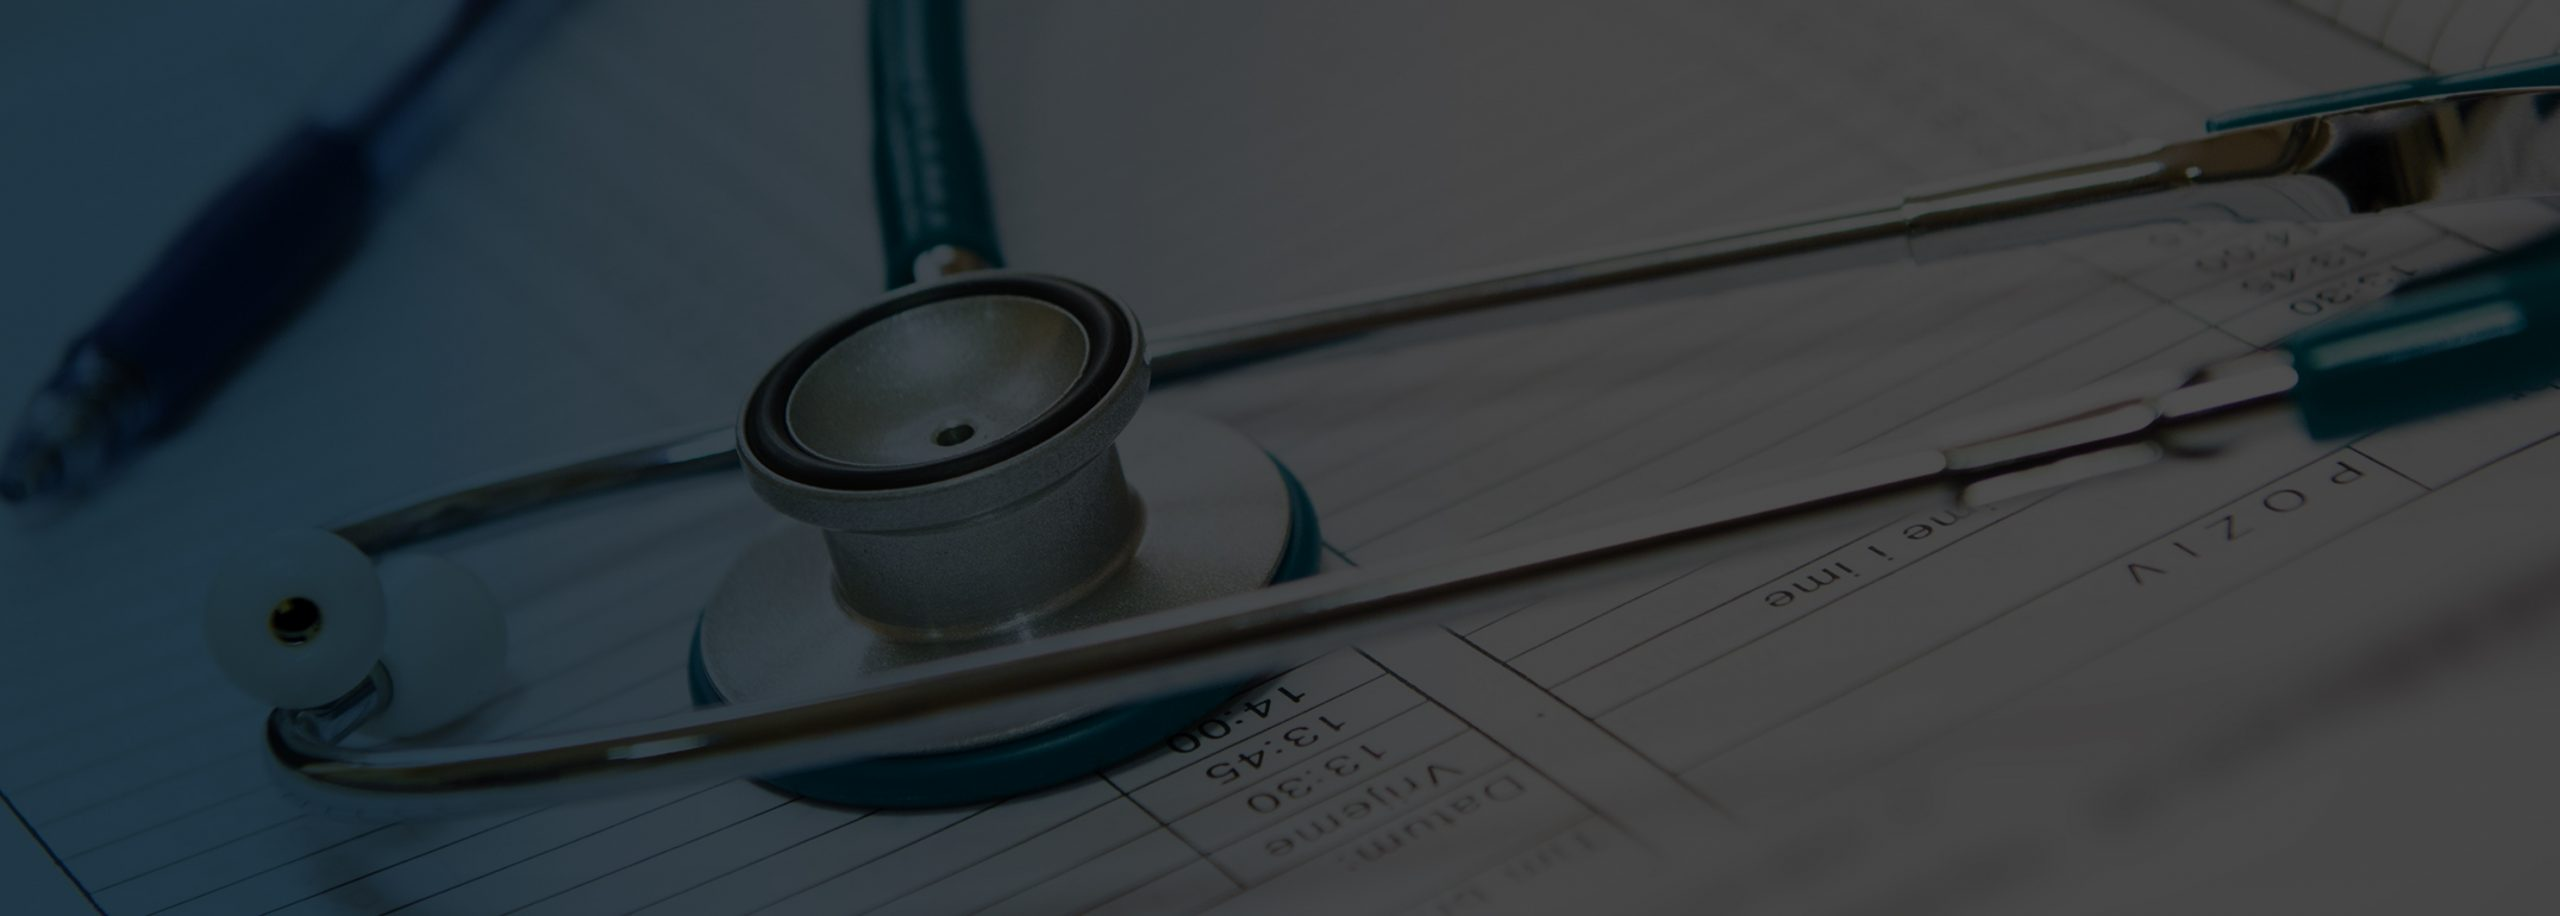 A stethoscope placed on a billing paper in a medical billing company